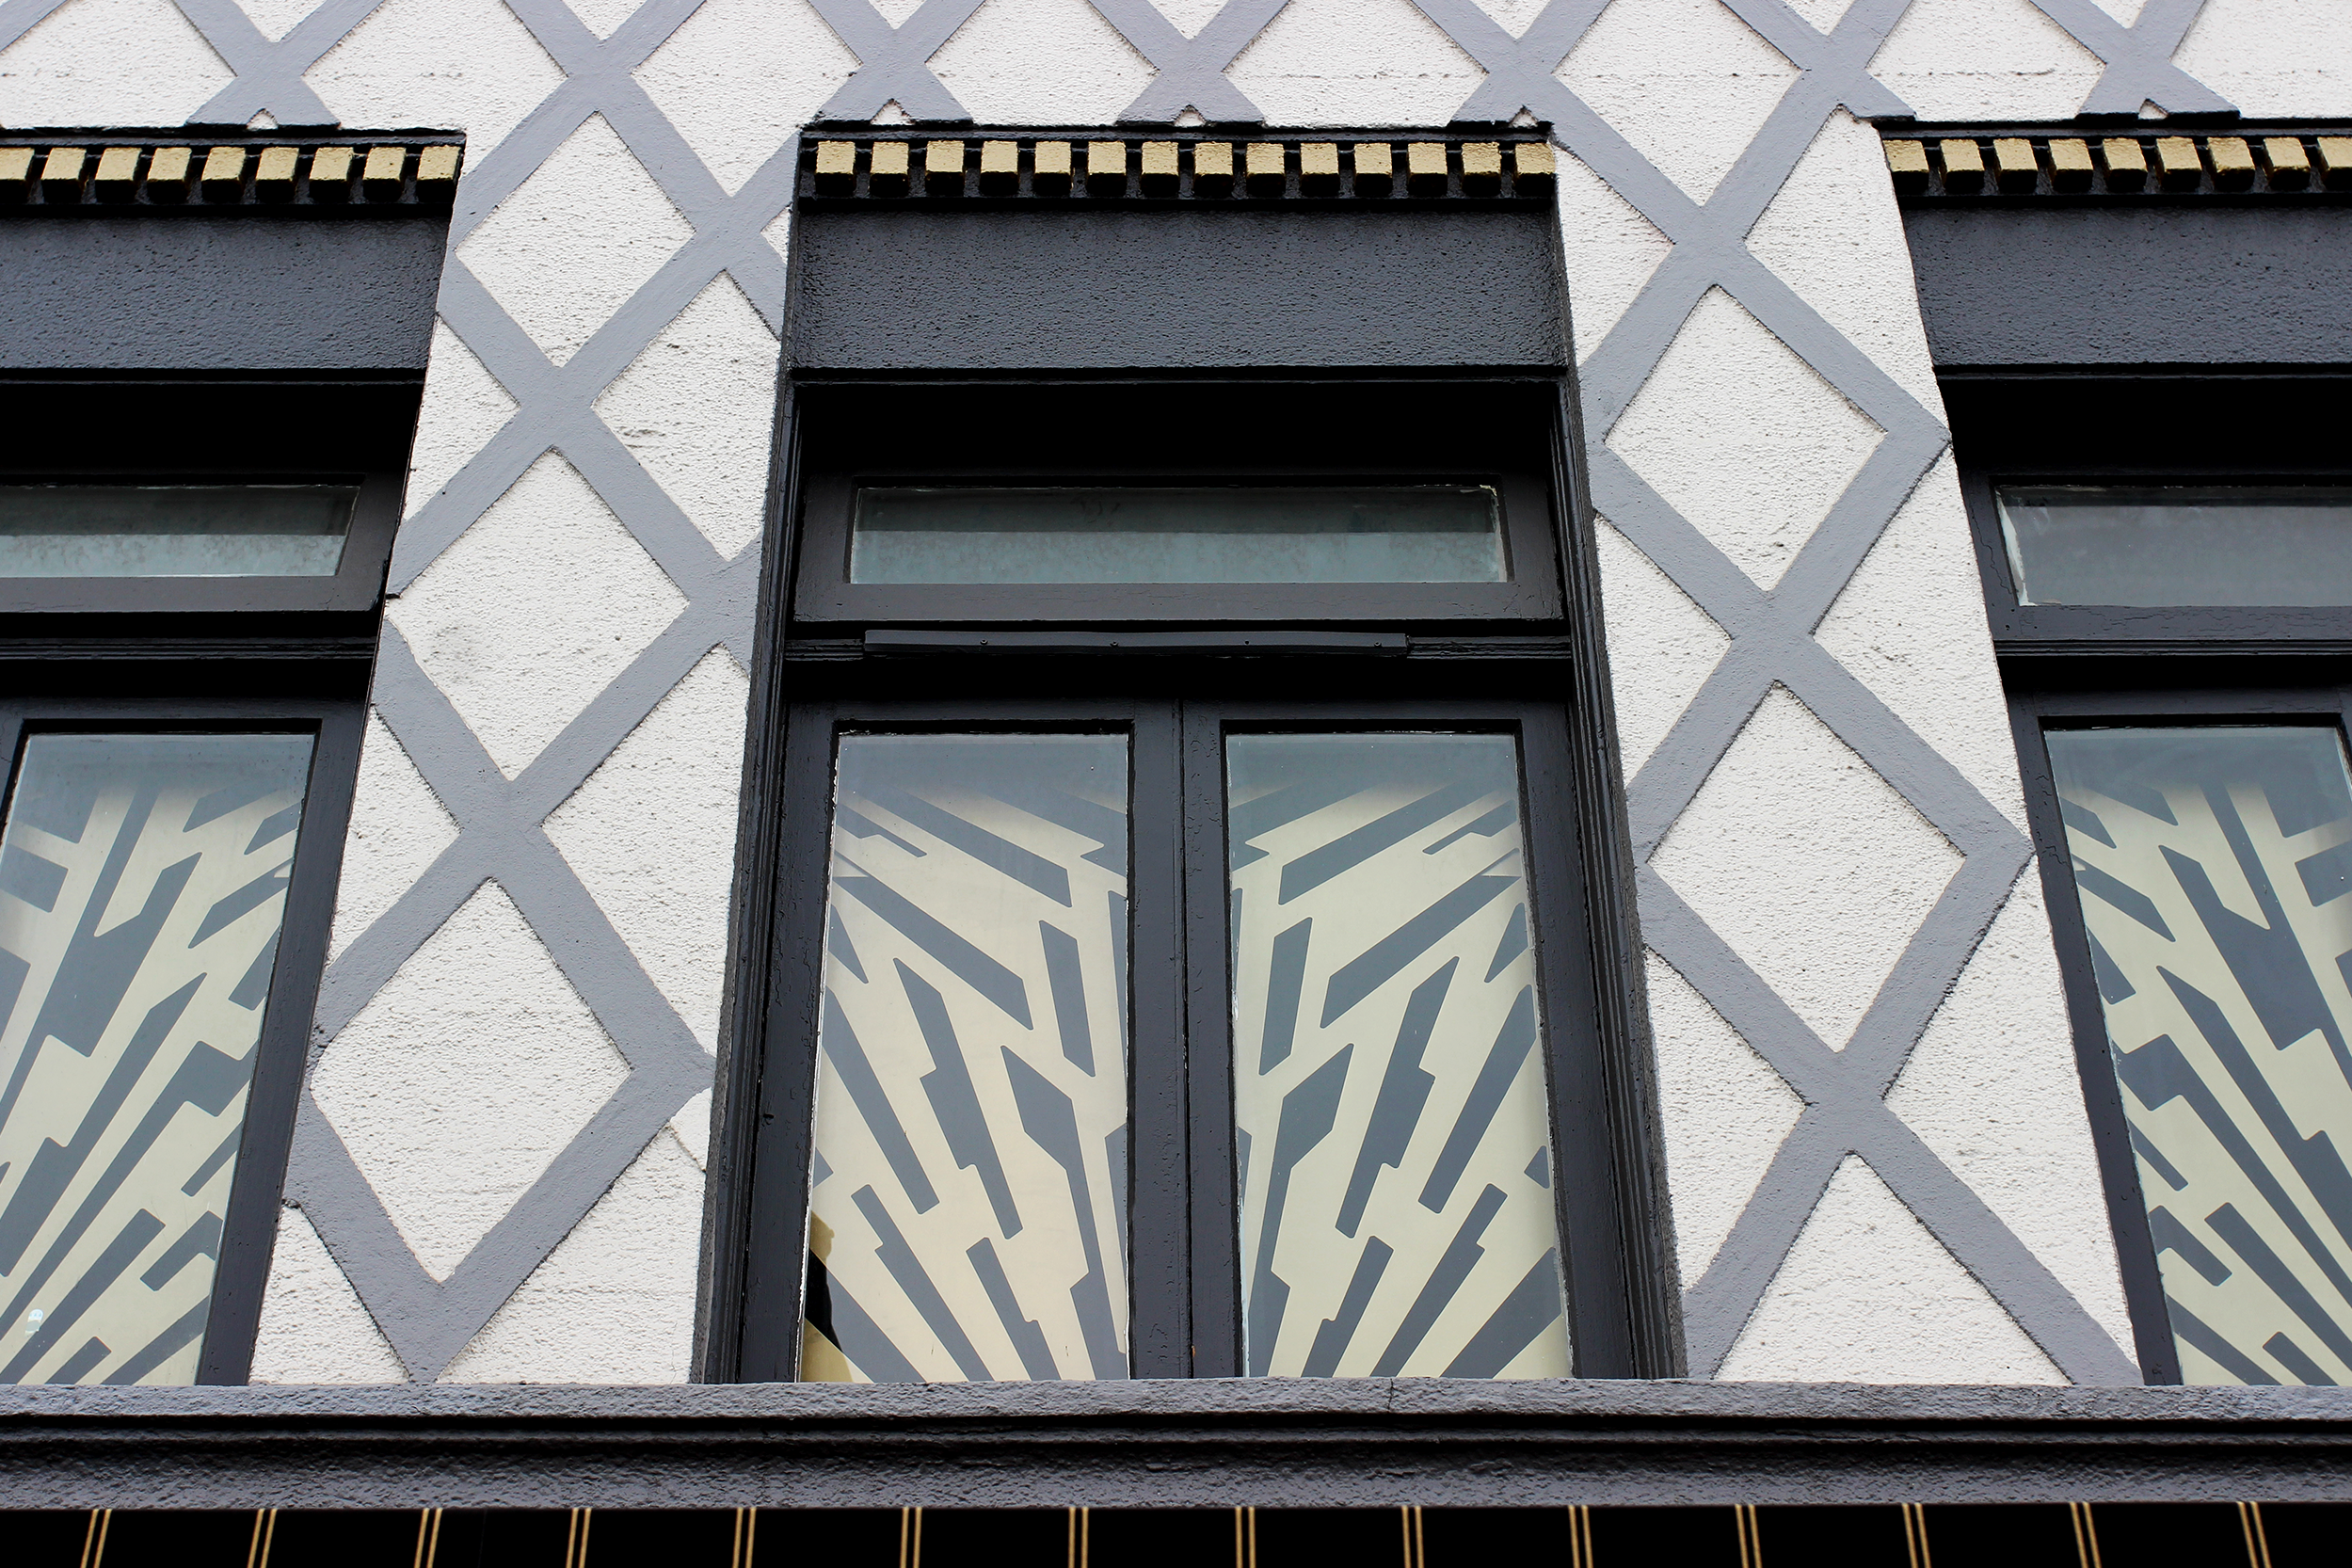 exterior image of The Parkway window grates